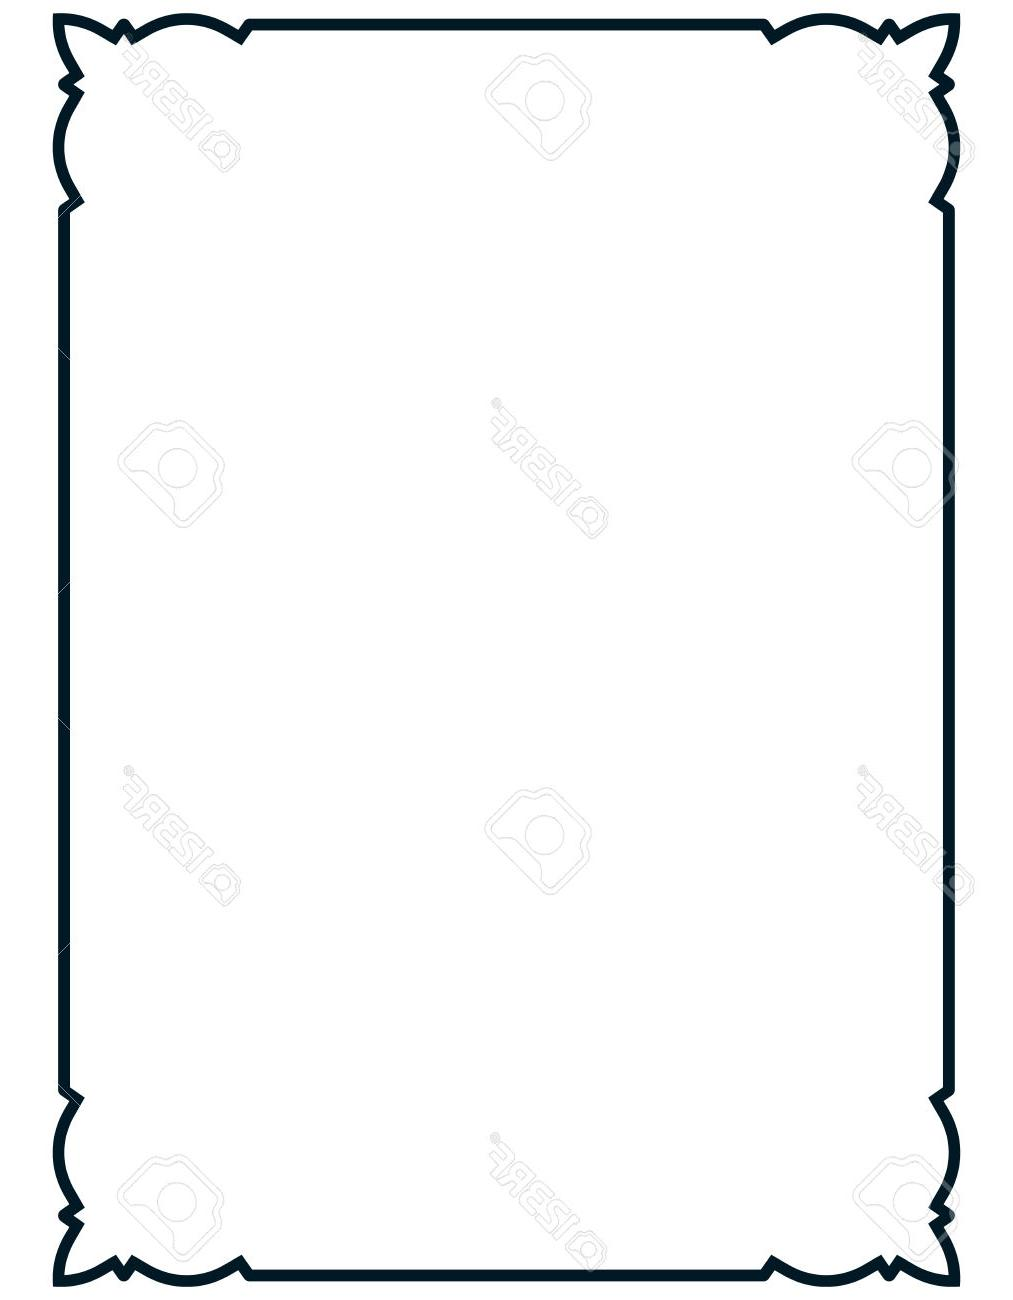 1013x1300 Best Free Menu Borders Vector Images Free Vector Art, Images